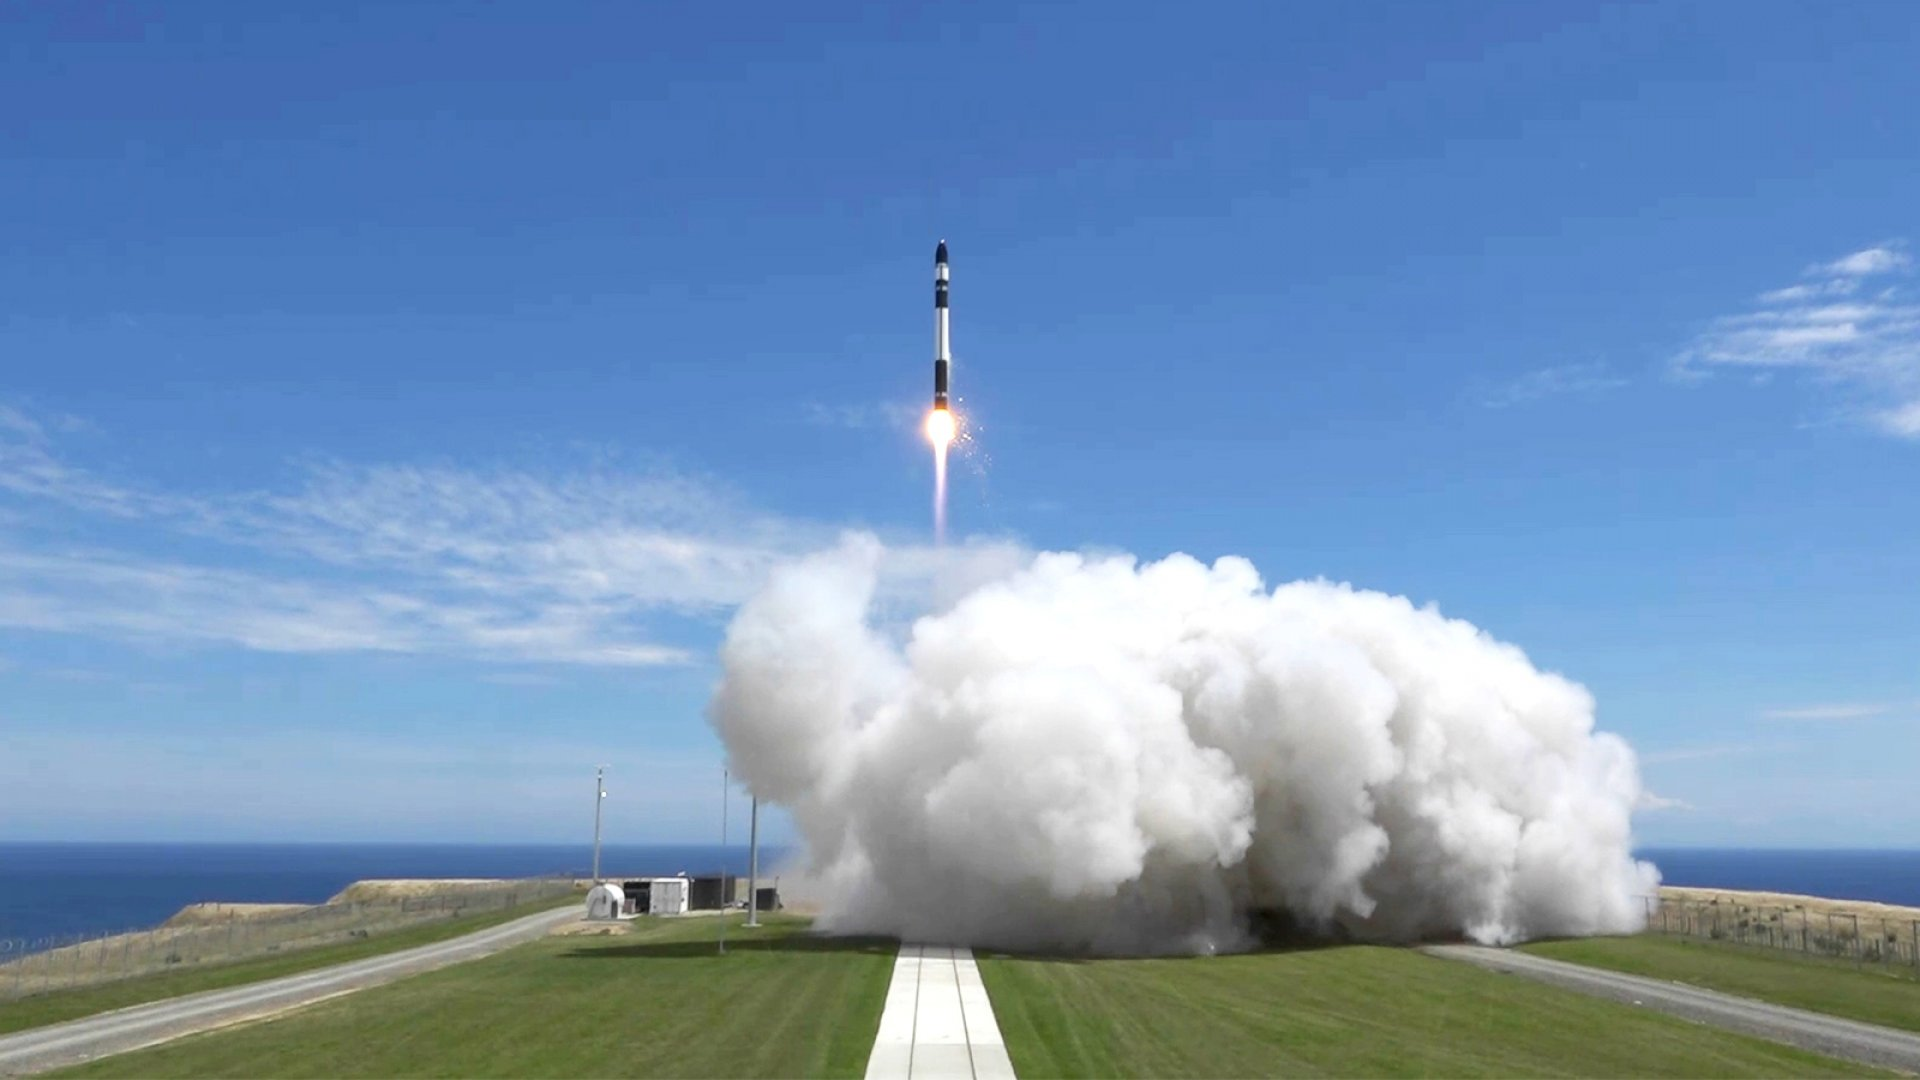 Rocket Lab's 'Still Testing' blasts off from the company's New Zealand launch pad.